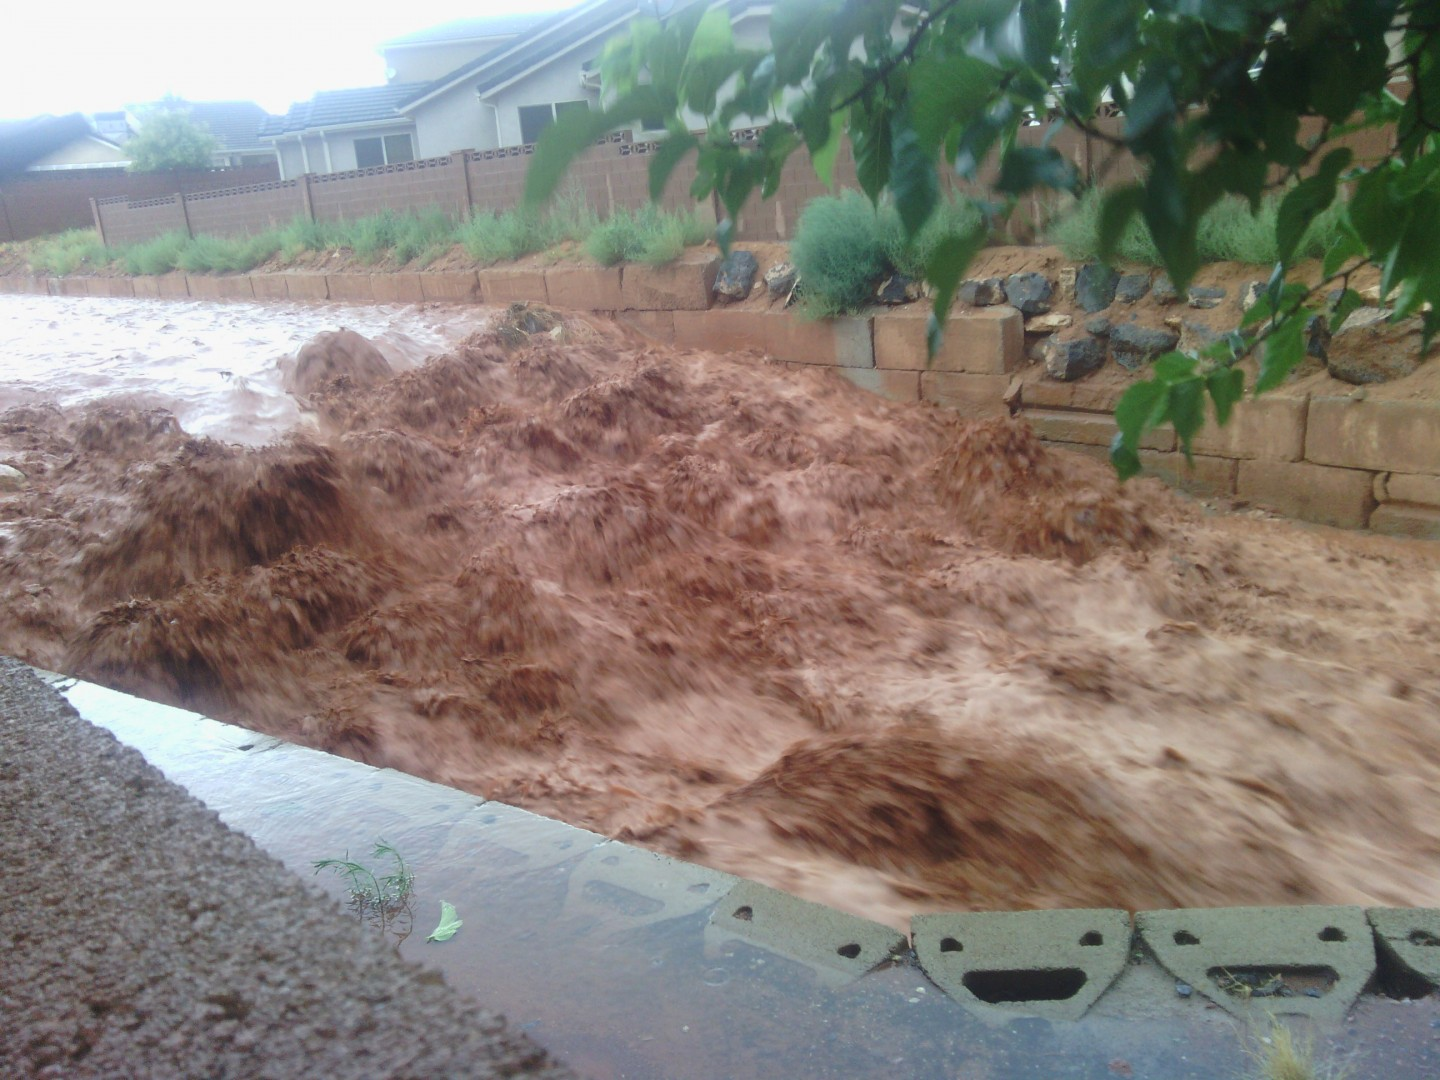 Drainage by Pine Valley Townhomes, Washington, Utah, July 26, 2013 | Photo by Aimee Cox, St. George News